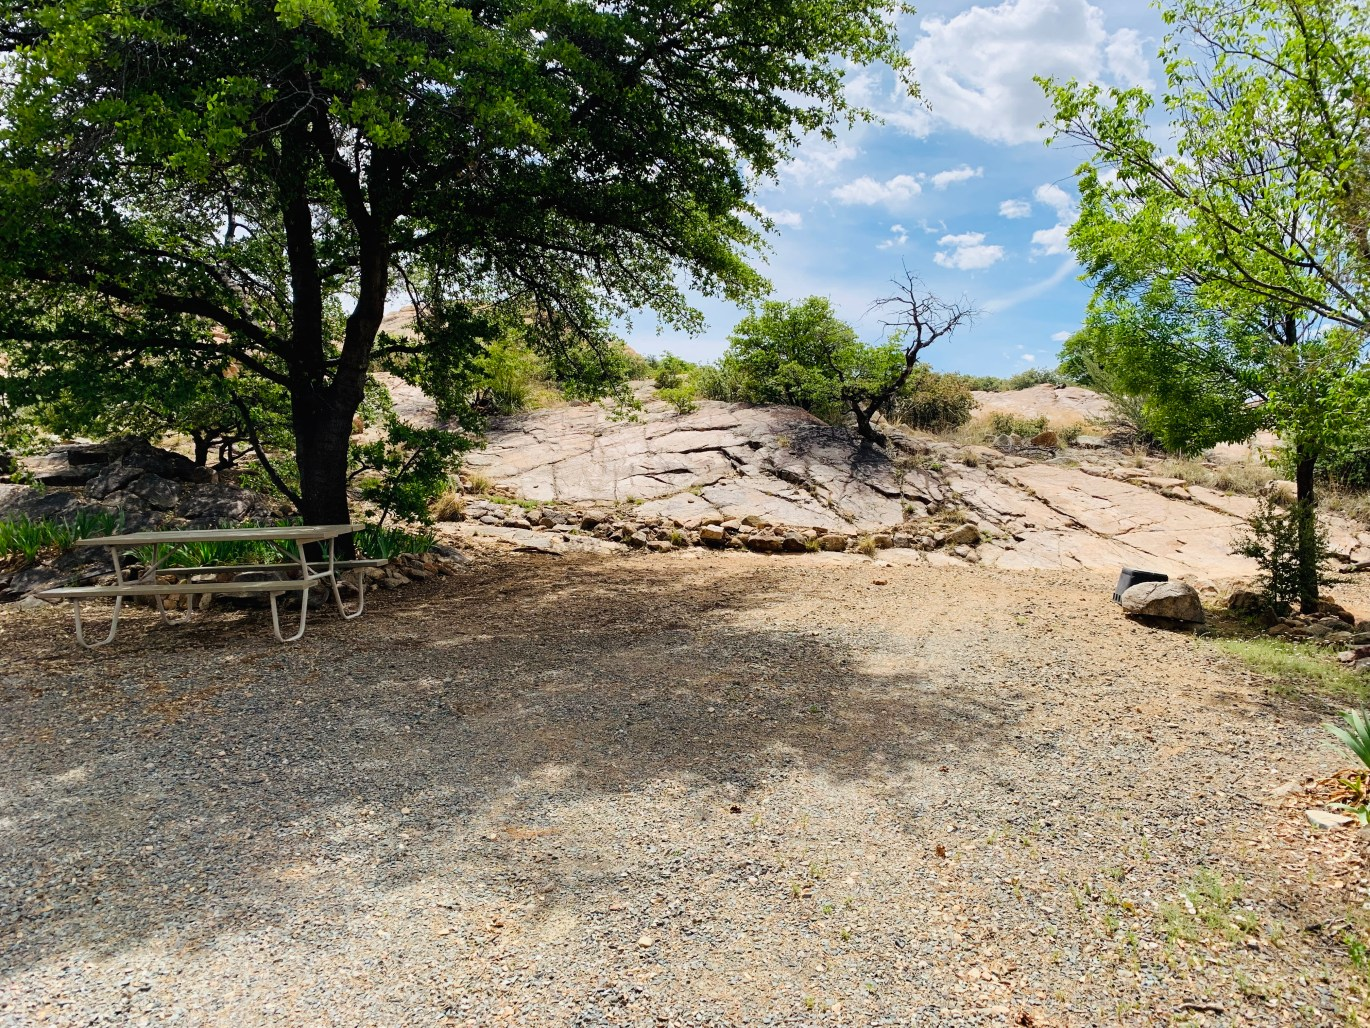 Campsite 9 at Point of Rocks RV Campground